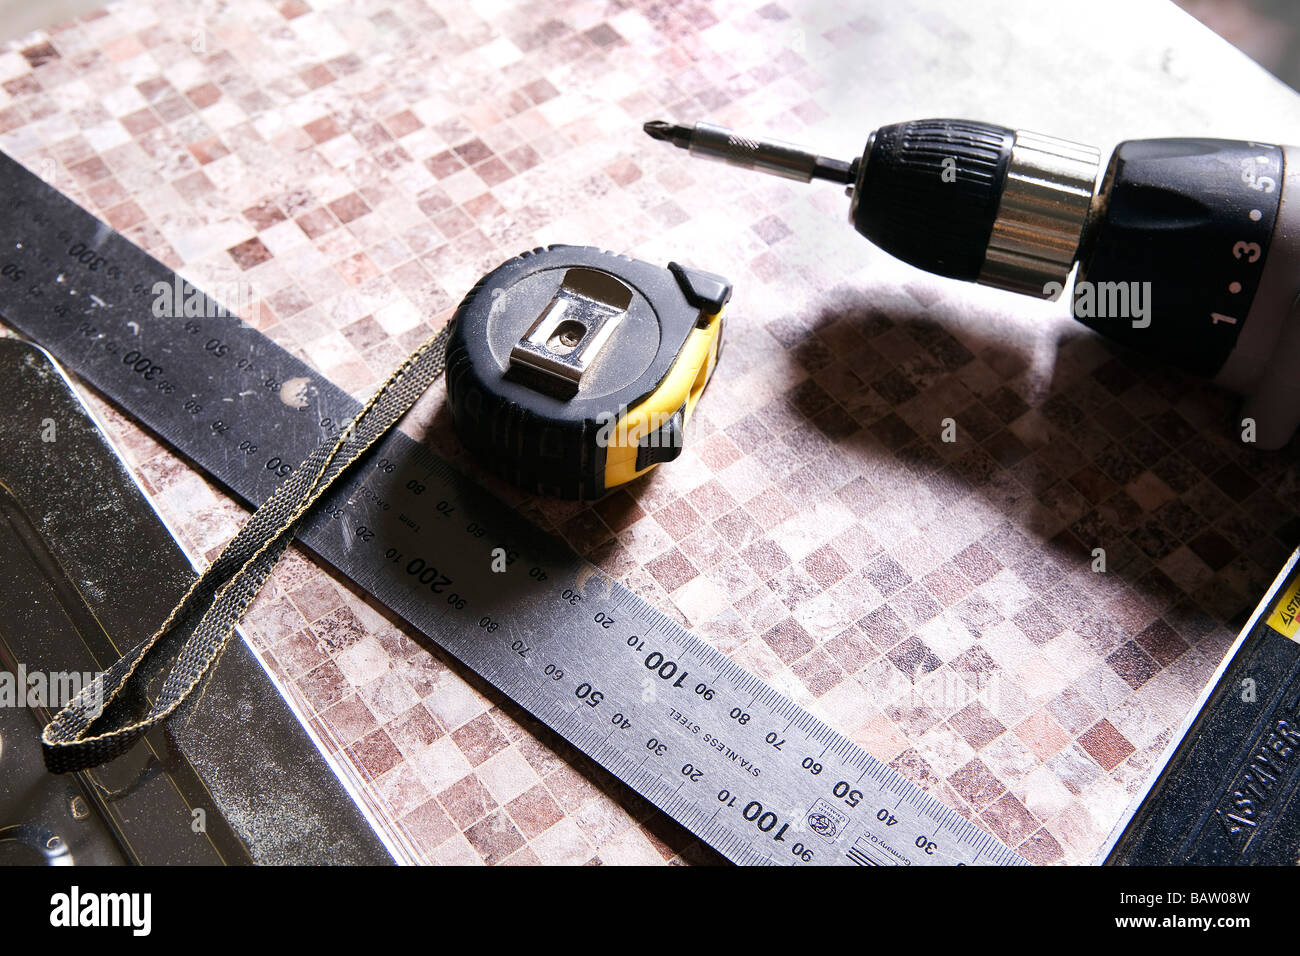 still life of ruler tape measure and cordless screwdriver - Stock Image